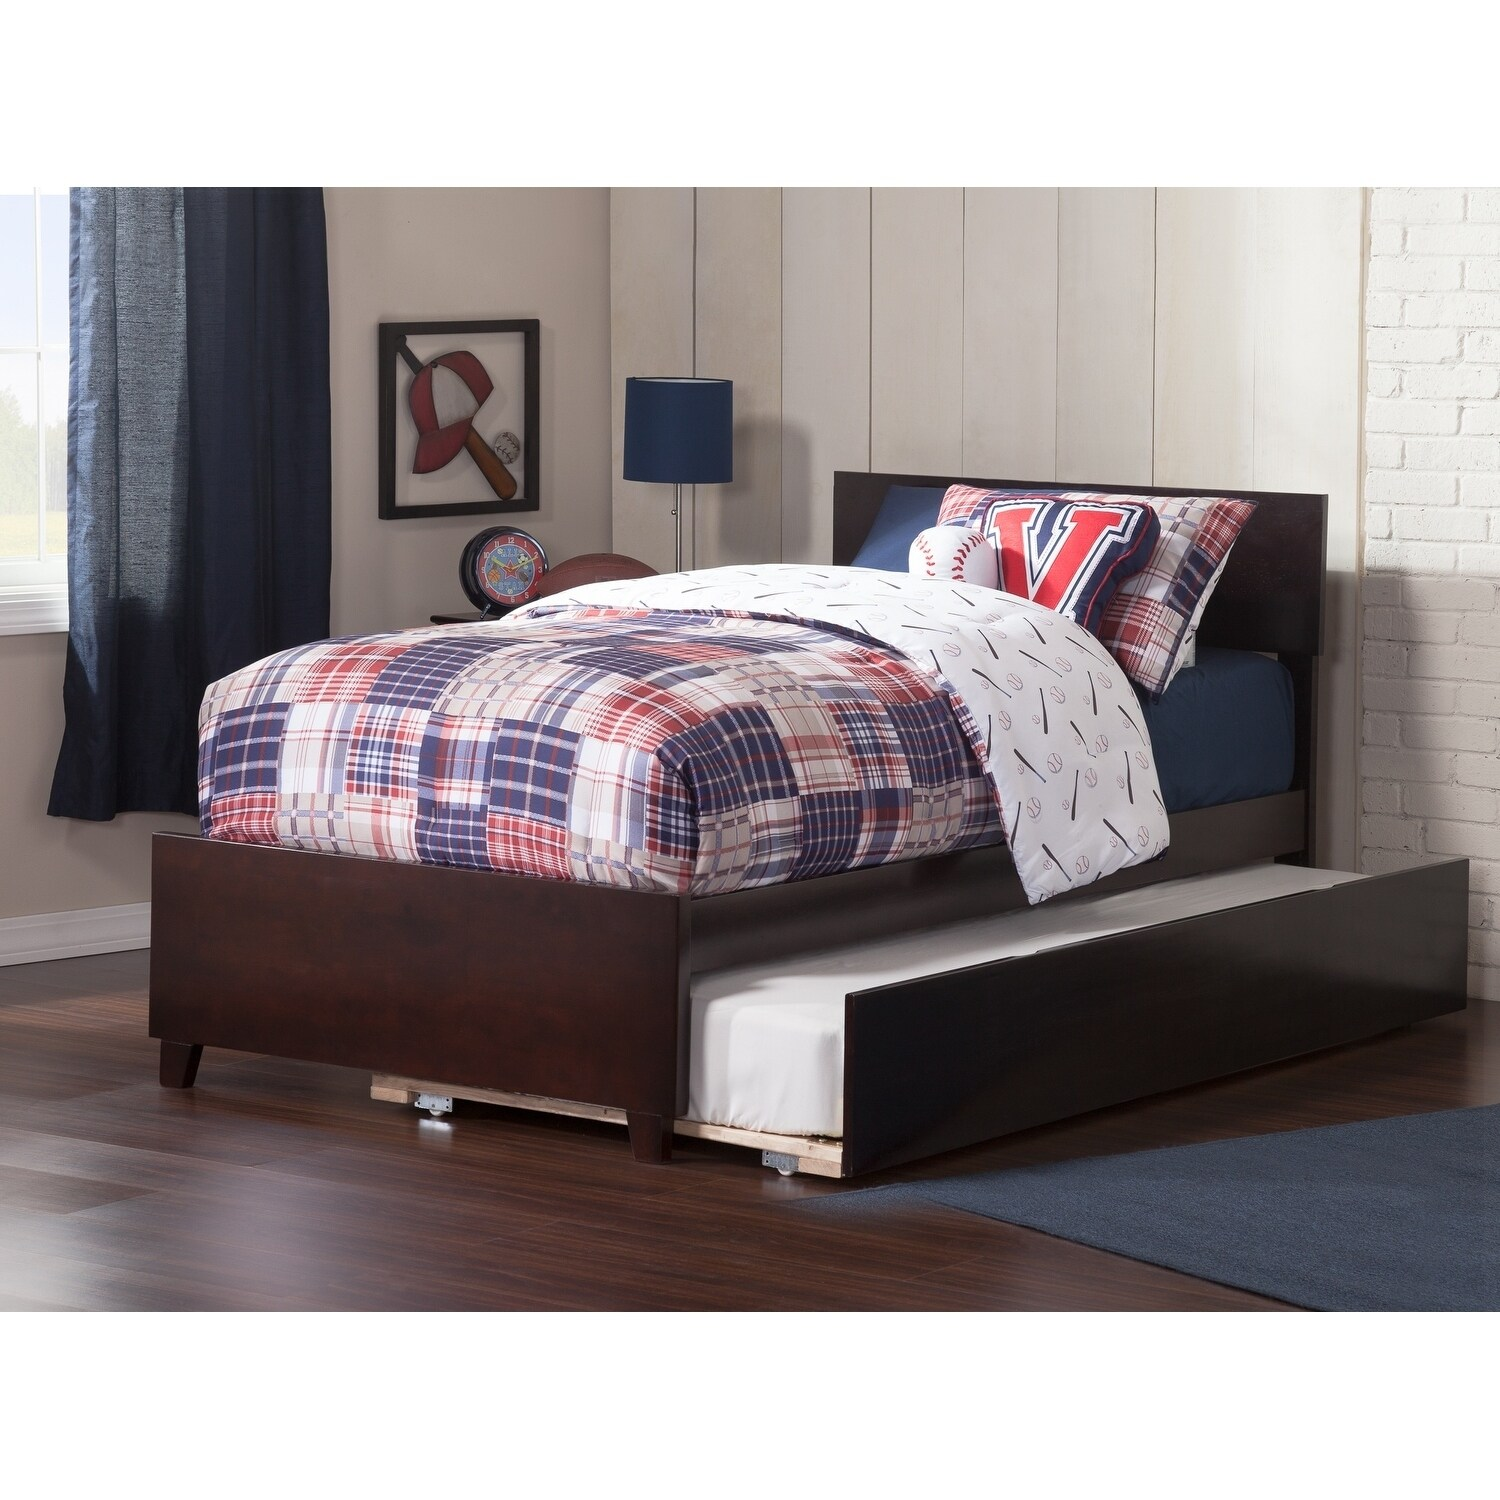 Atlantic Furniture Orlando Twin Bed with Matching Foot Bo...